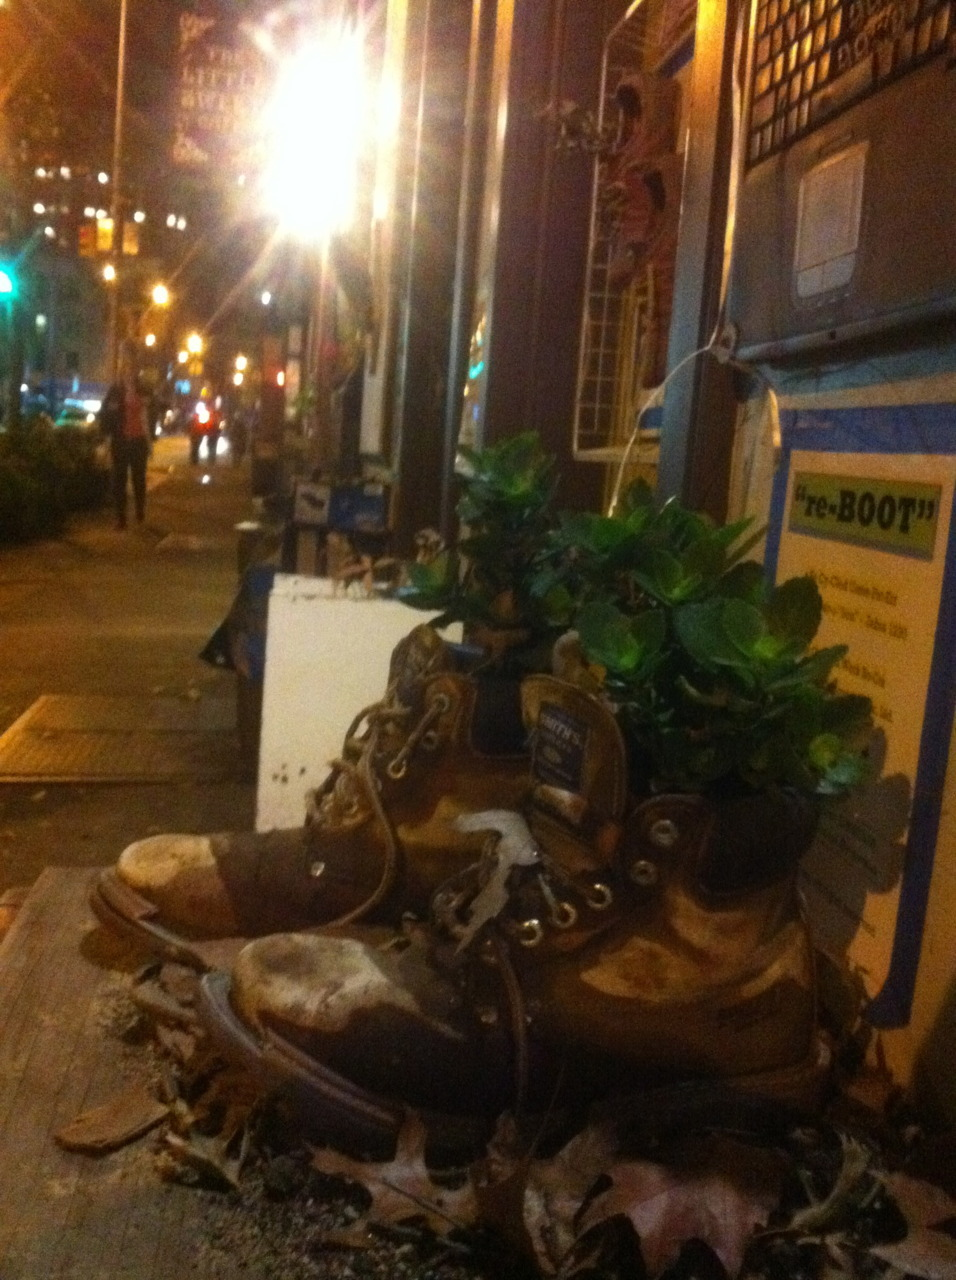 urbangreens:  eric submitted:  Just a fun and creative little planter I saw in Brooklyn last night.